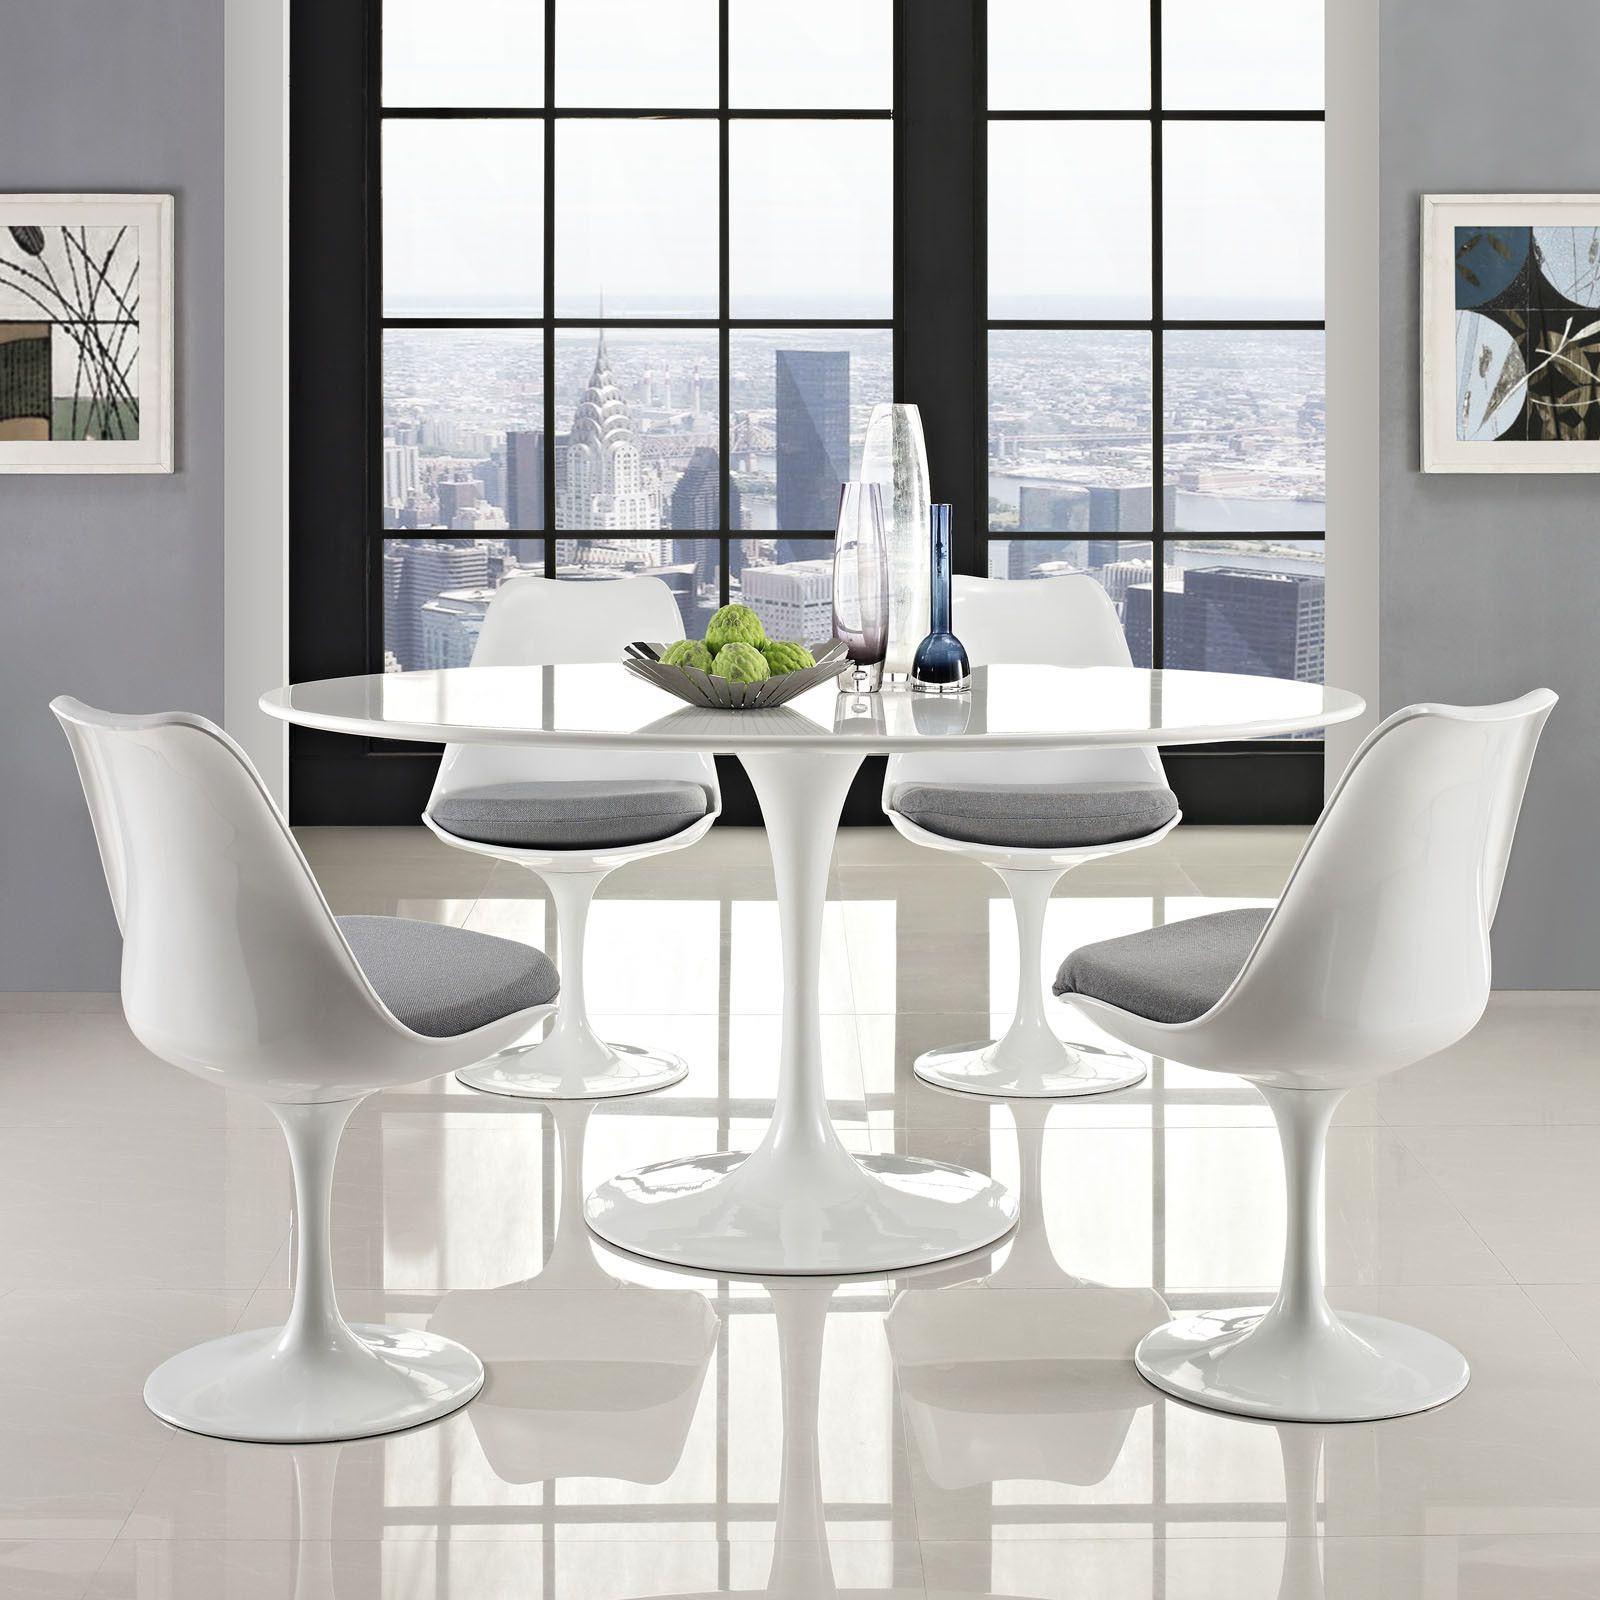 Lore Oval Dining Table White Tulip Dining Table White Dining Table Modern Dining Table